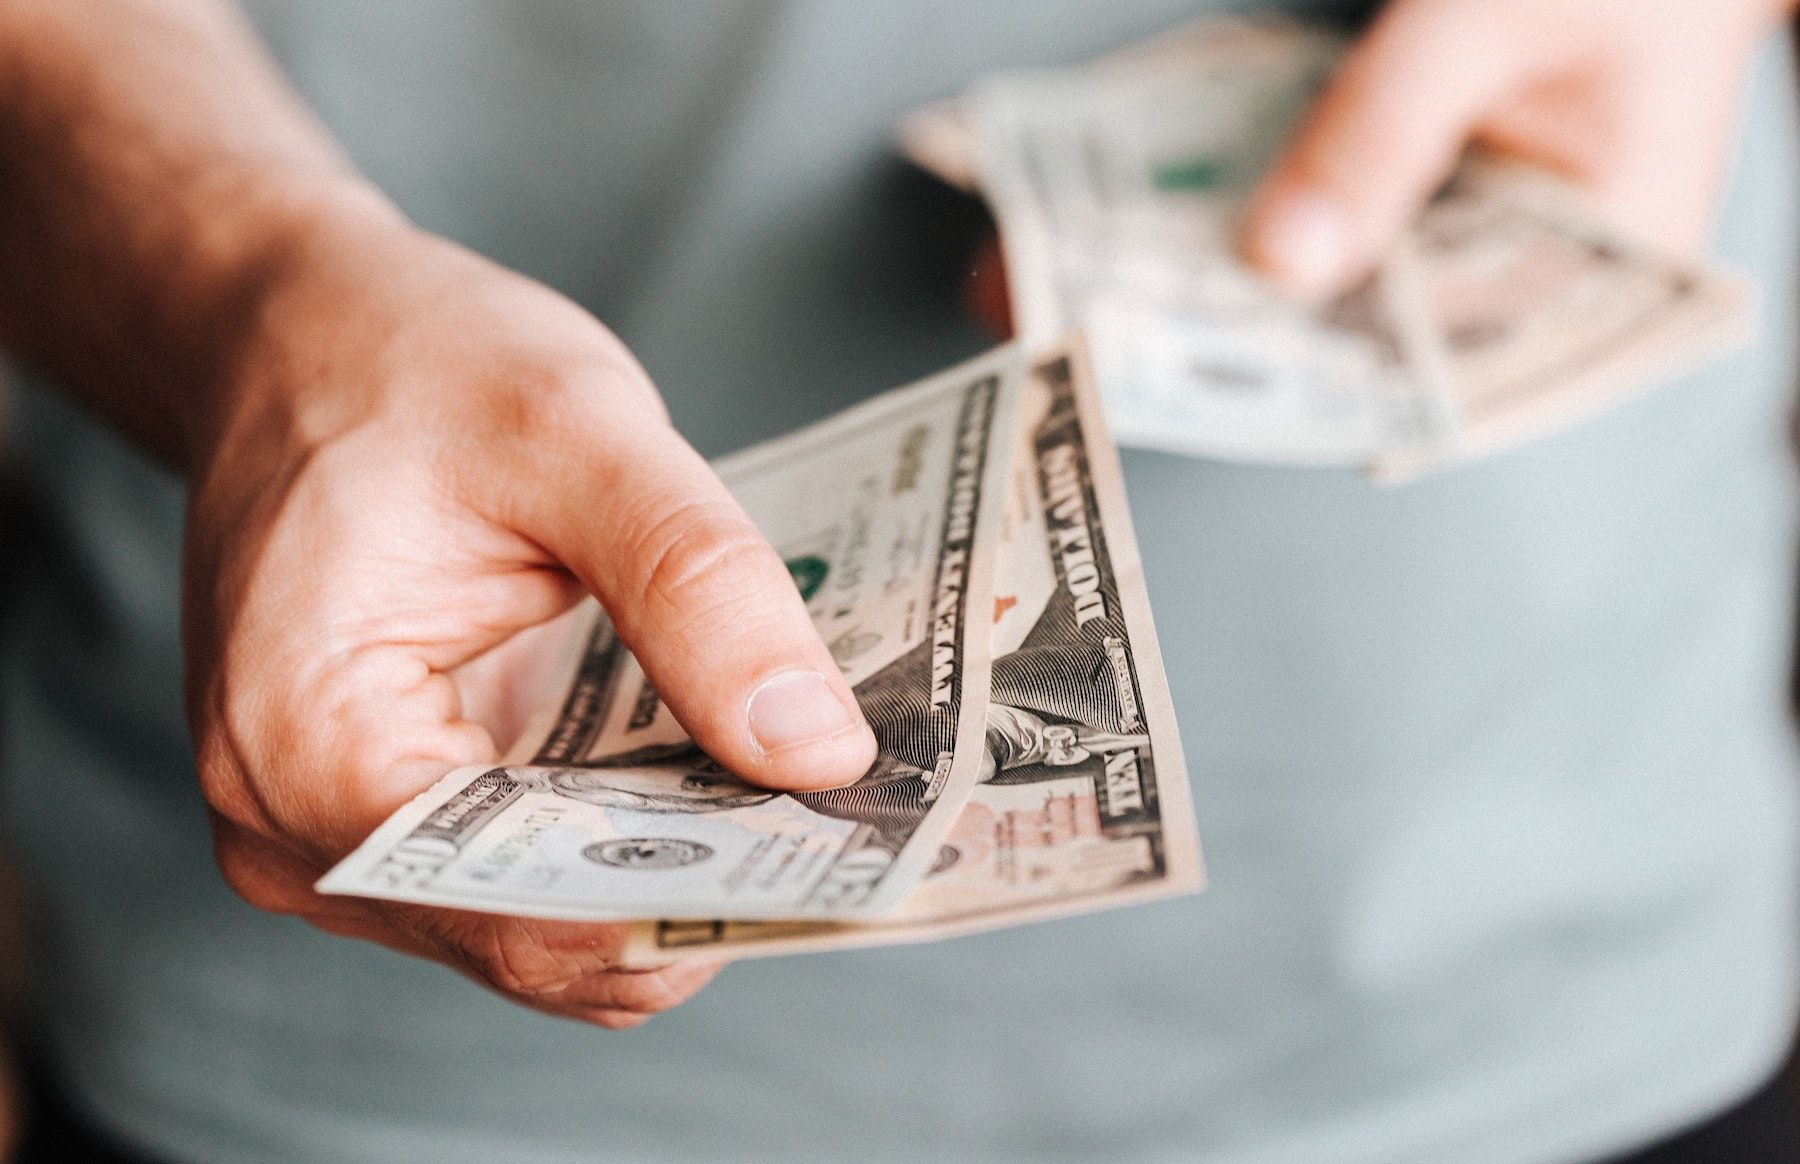 A person holding several twenty and 10 dollar bills in their hand.